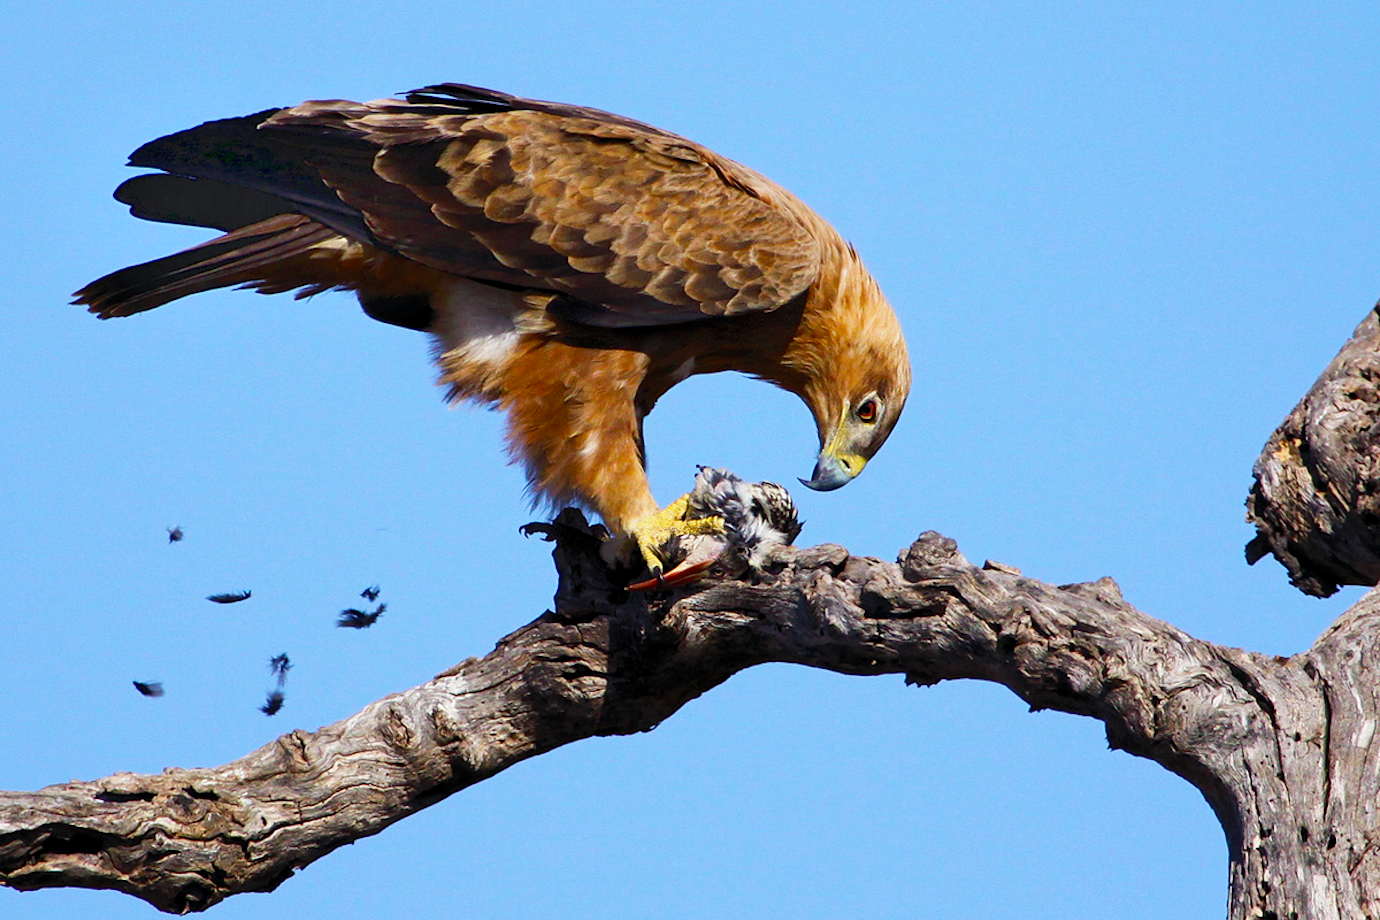 Peter-Pischler-Tawny-Eagle-with-Hornbill